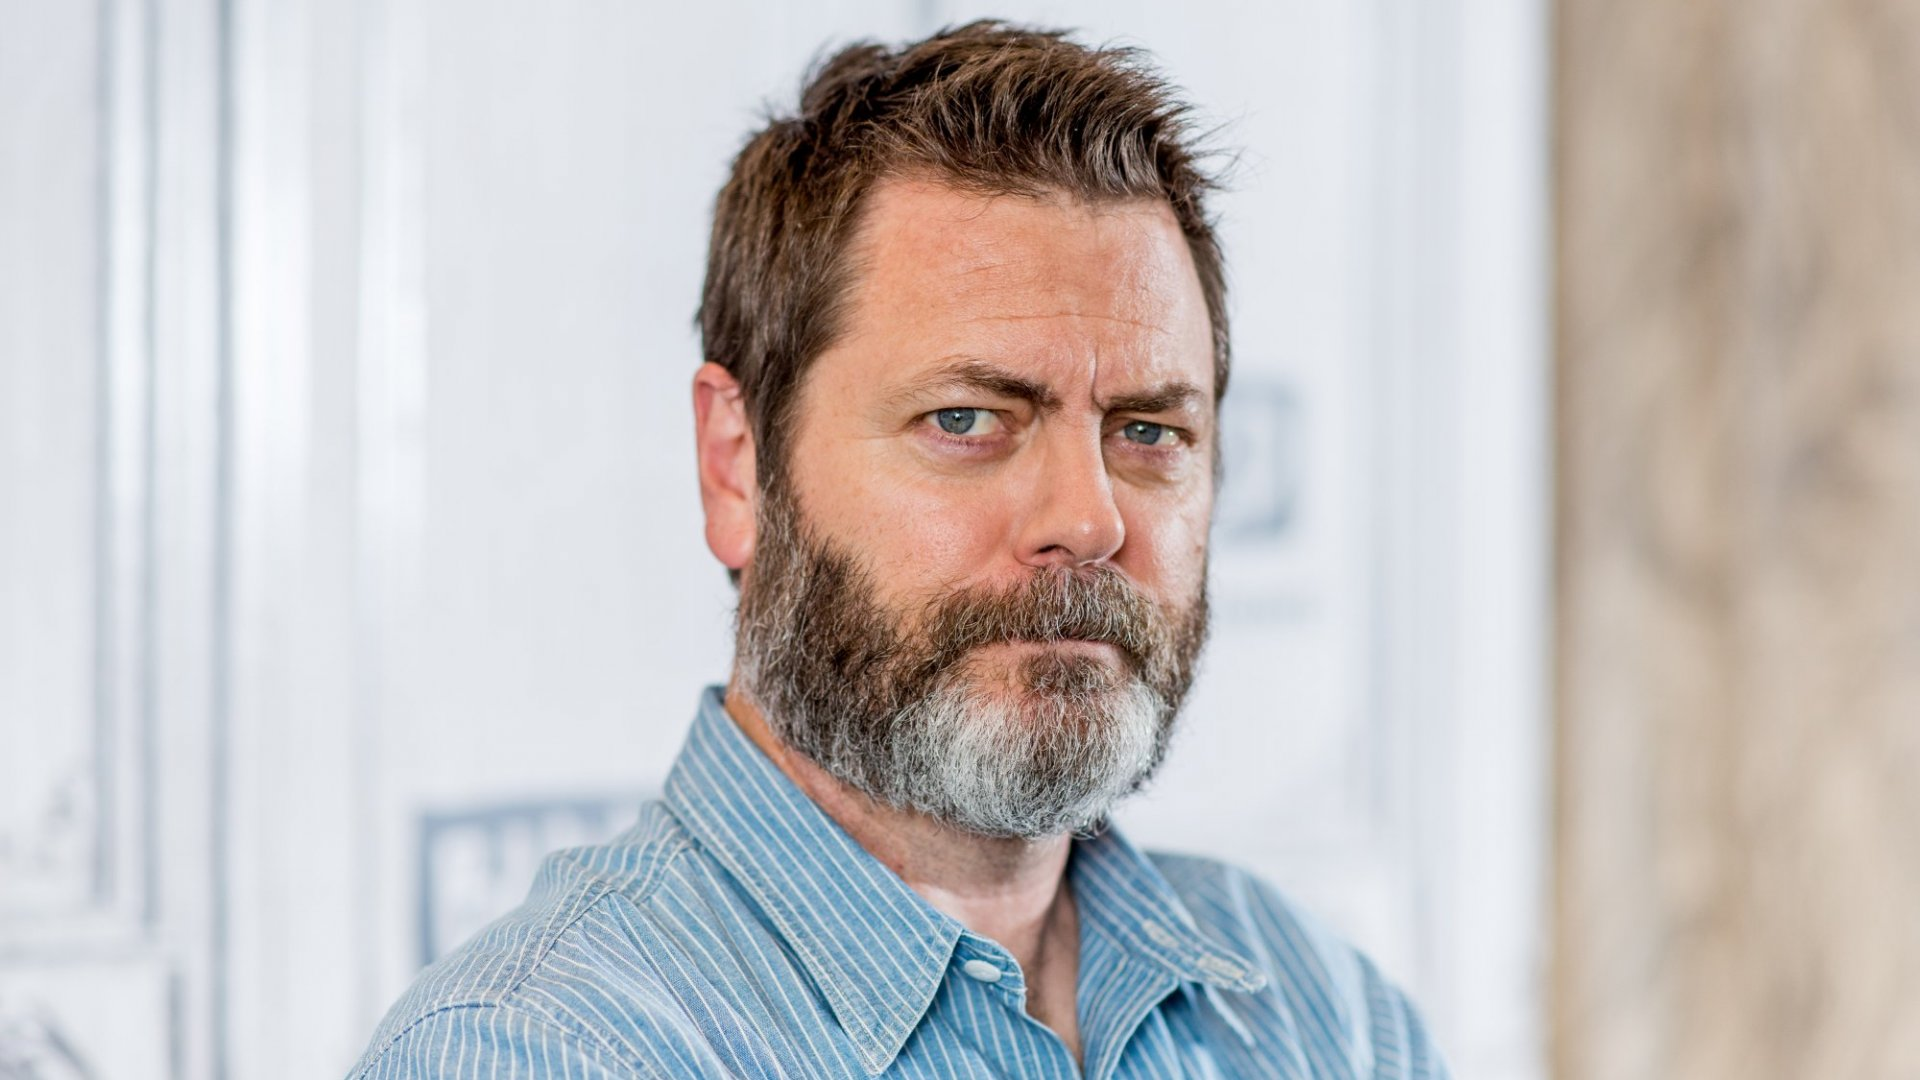 The Most Important Business Lesson Nick Offerman Learned From His Wife